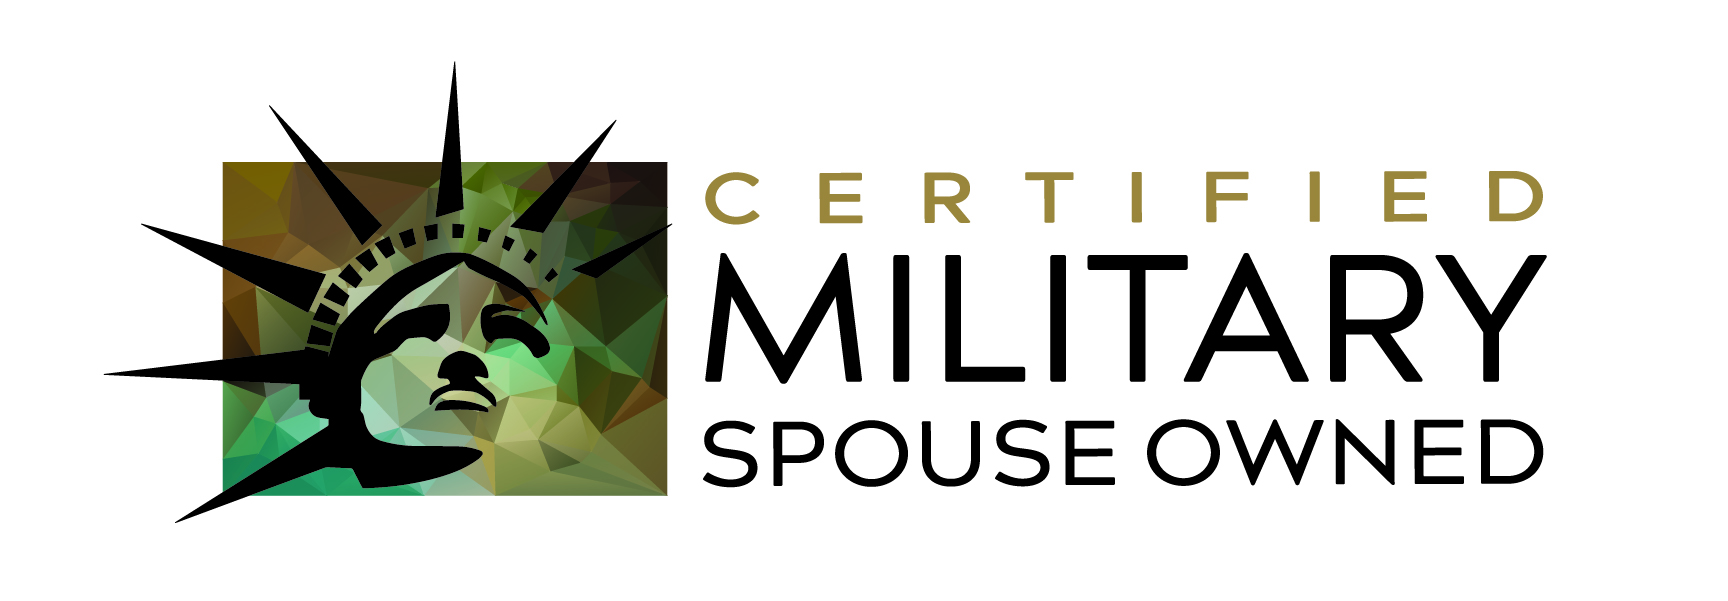 Military Spouse-Owned Enterprise Certification Badge